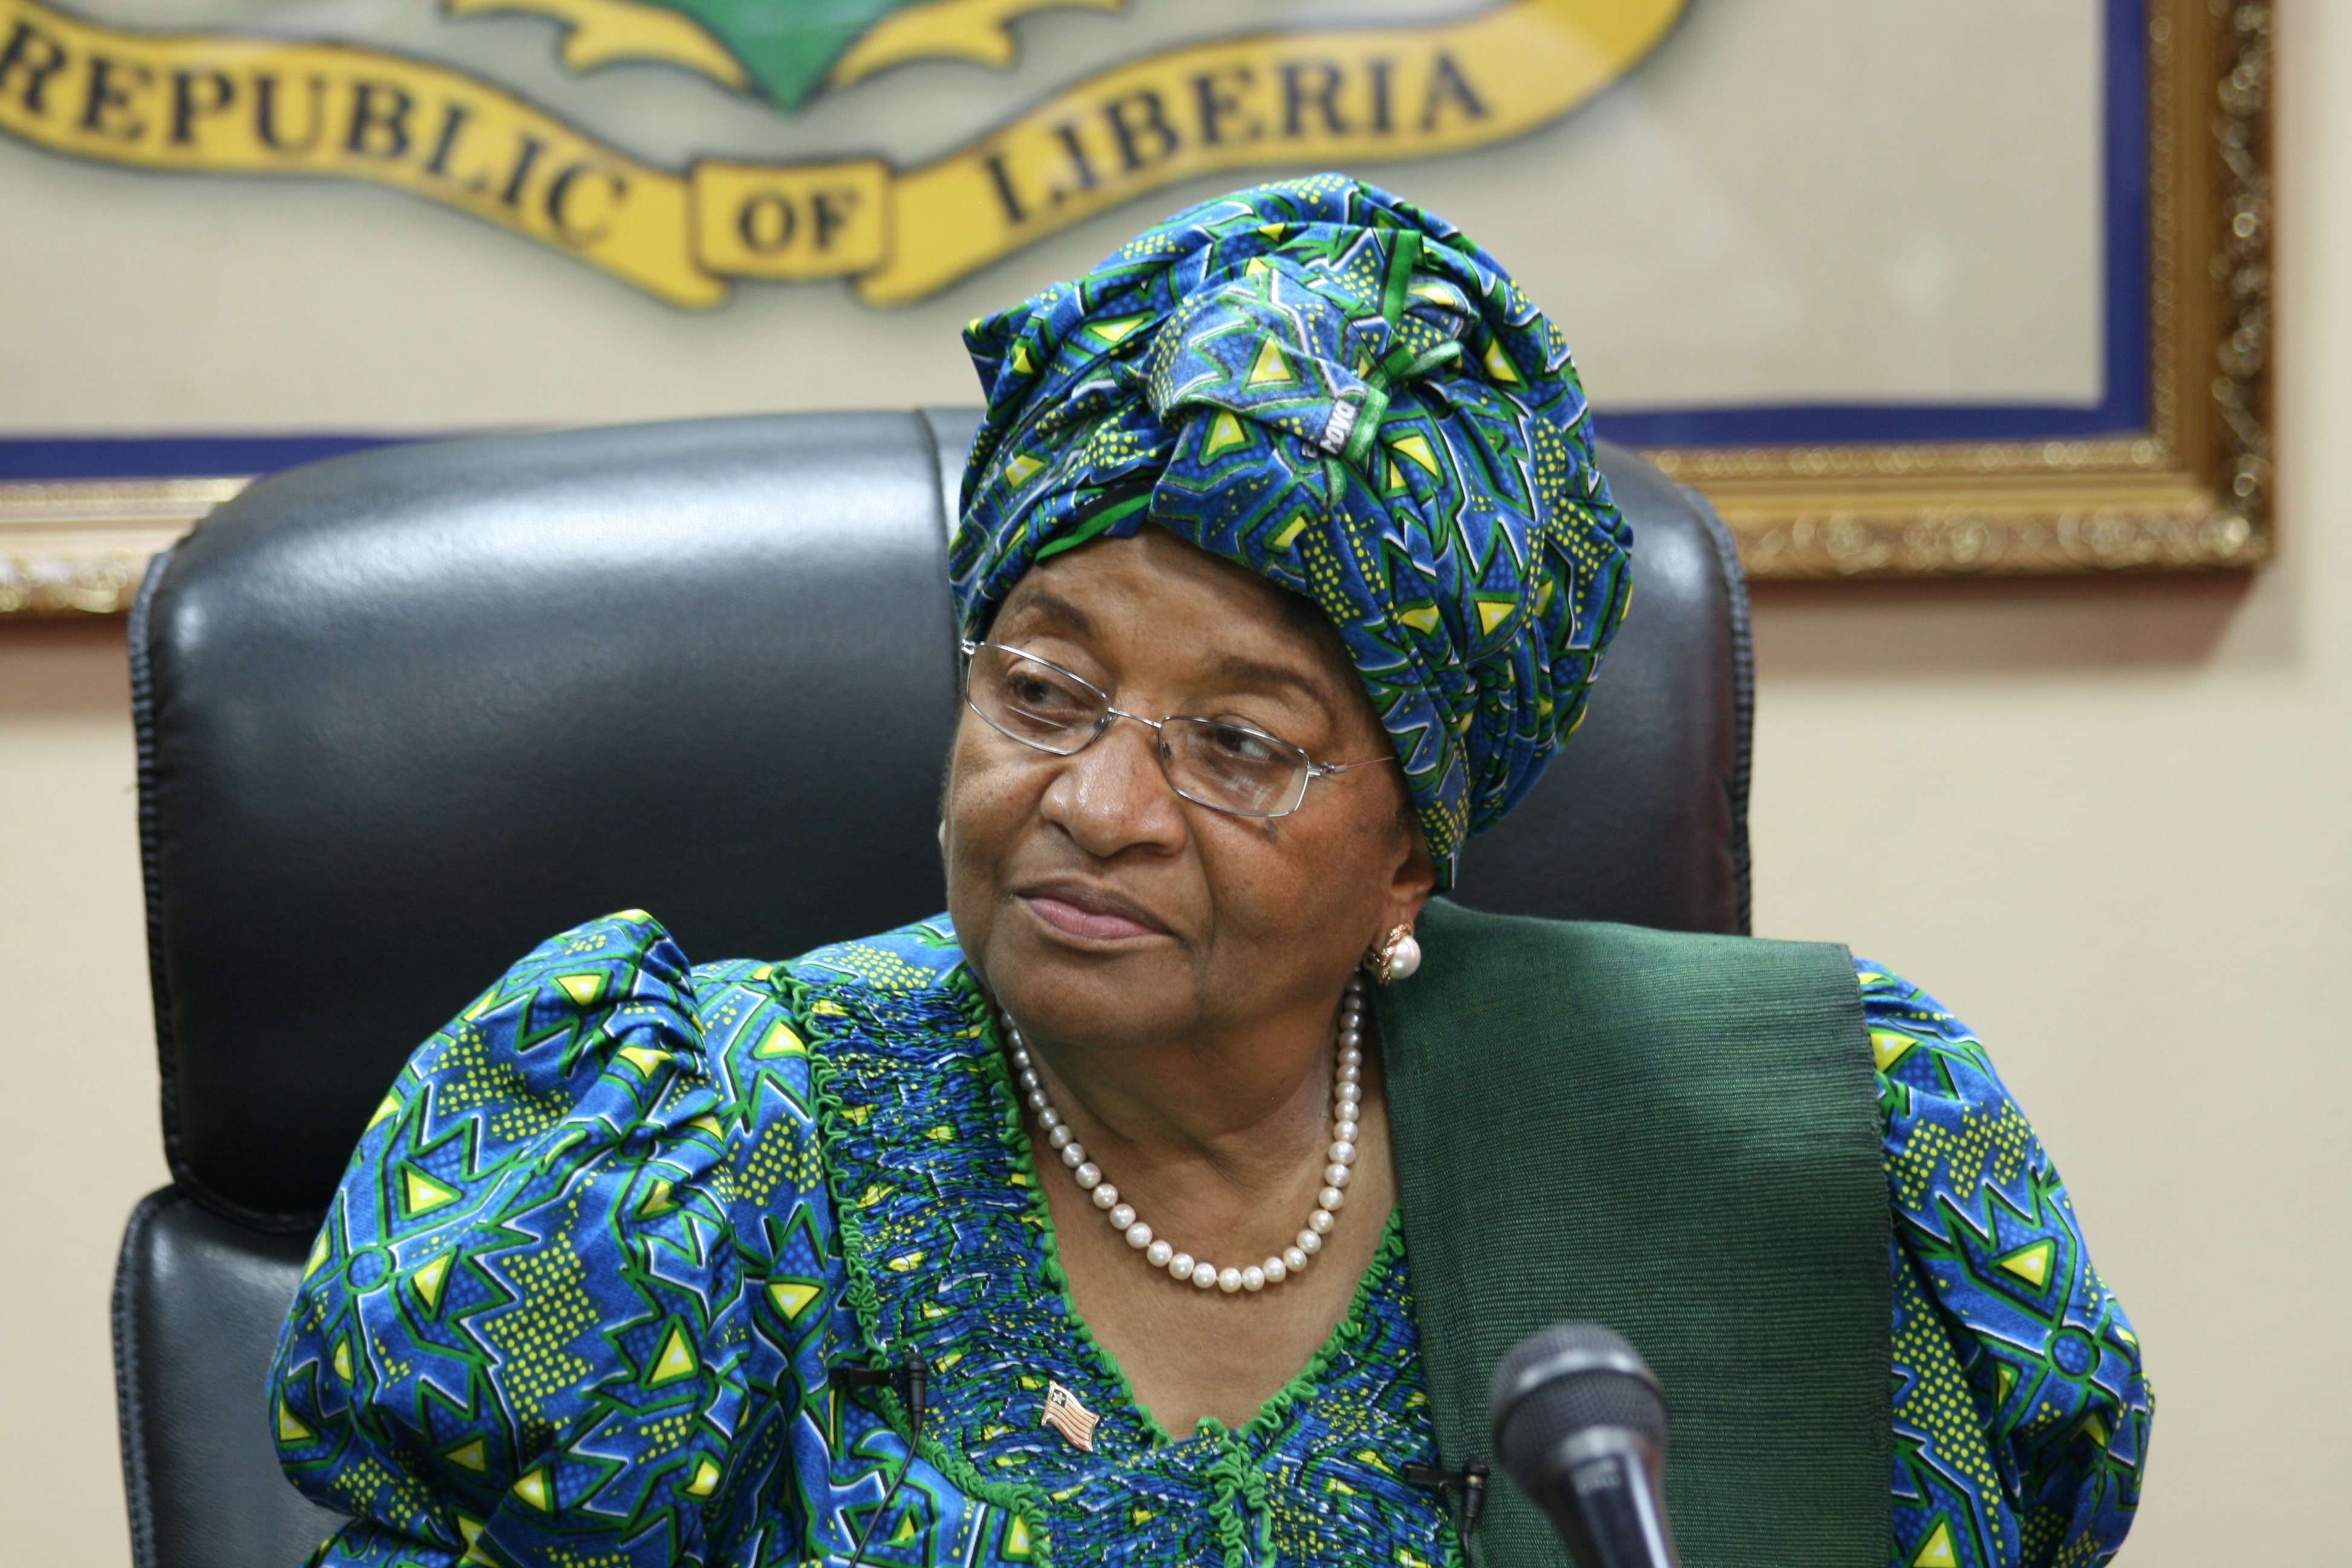 Johnson-Sirleaf warns of grave security situation along Liberia and Cote d'Ivoire border